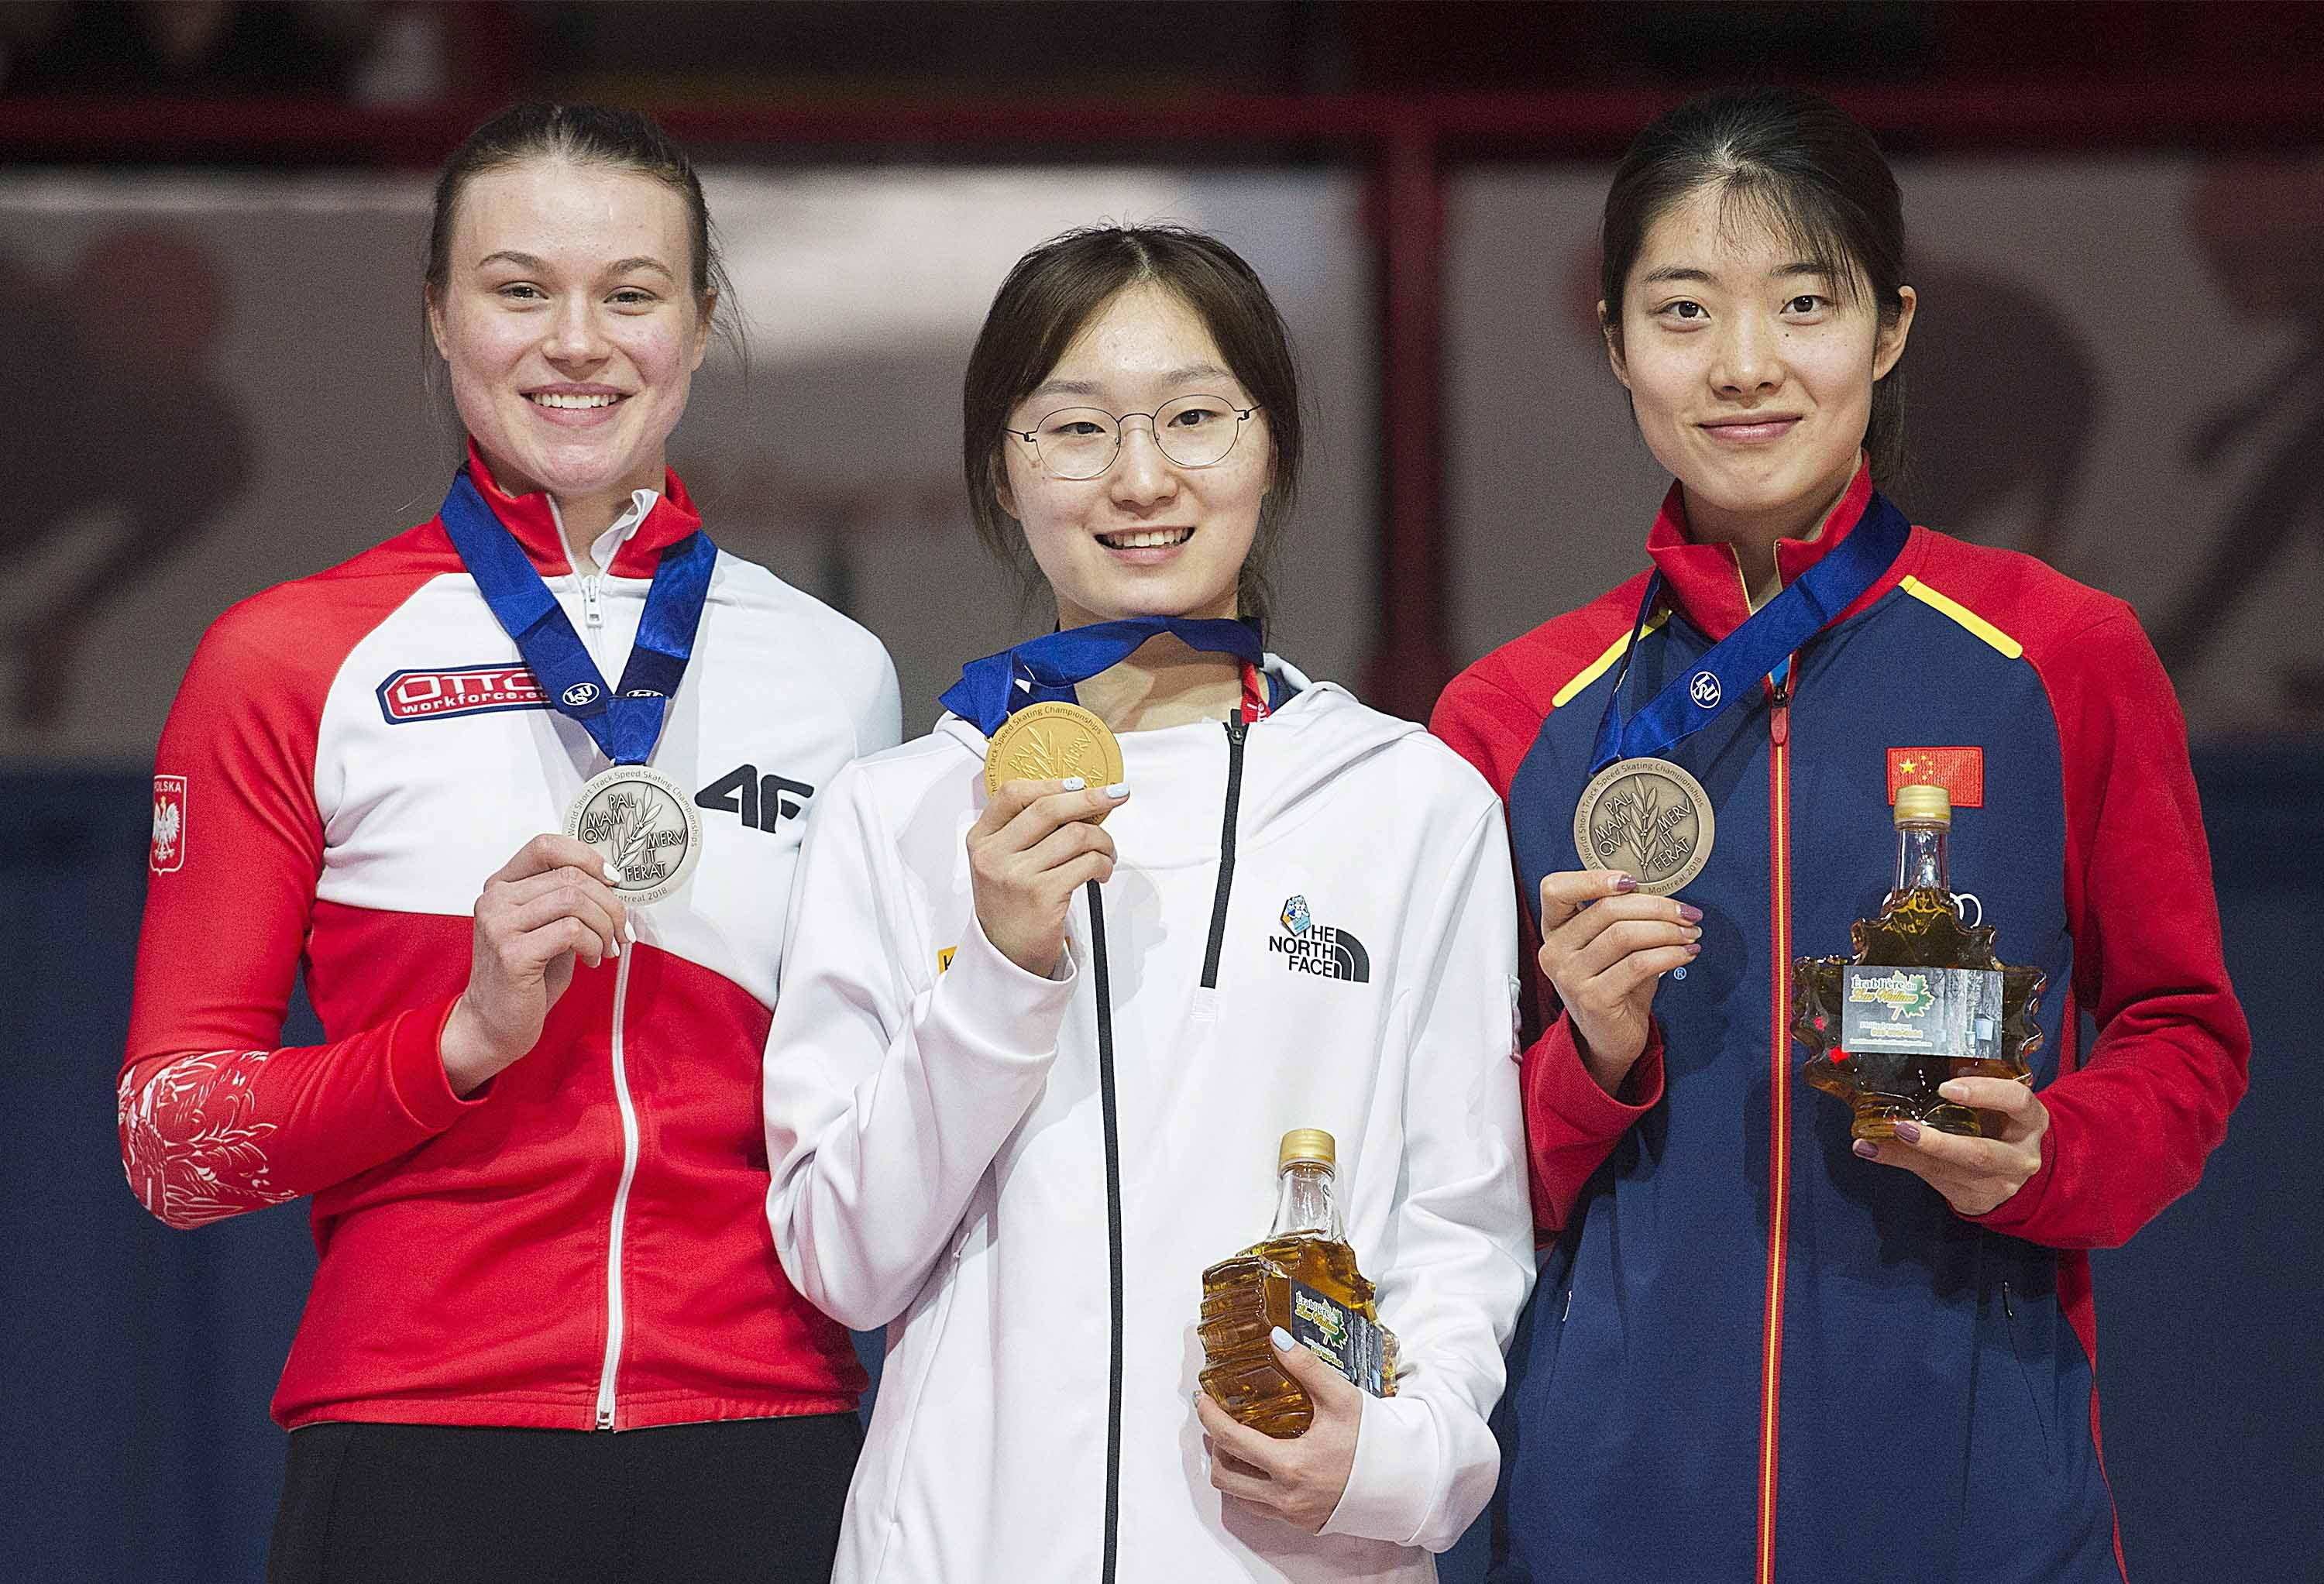 From left: Natalia Maliszewska of Poland; Choi Min-jeong of South Korea and Qu Chunyu of China hold up their medals following the women's 500 meters at the ISU world short-track speedskating championships in Montreal on Saturday.